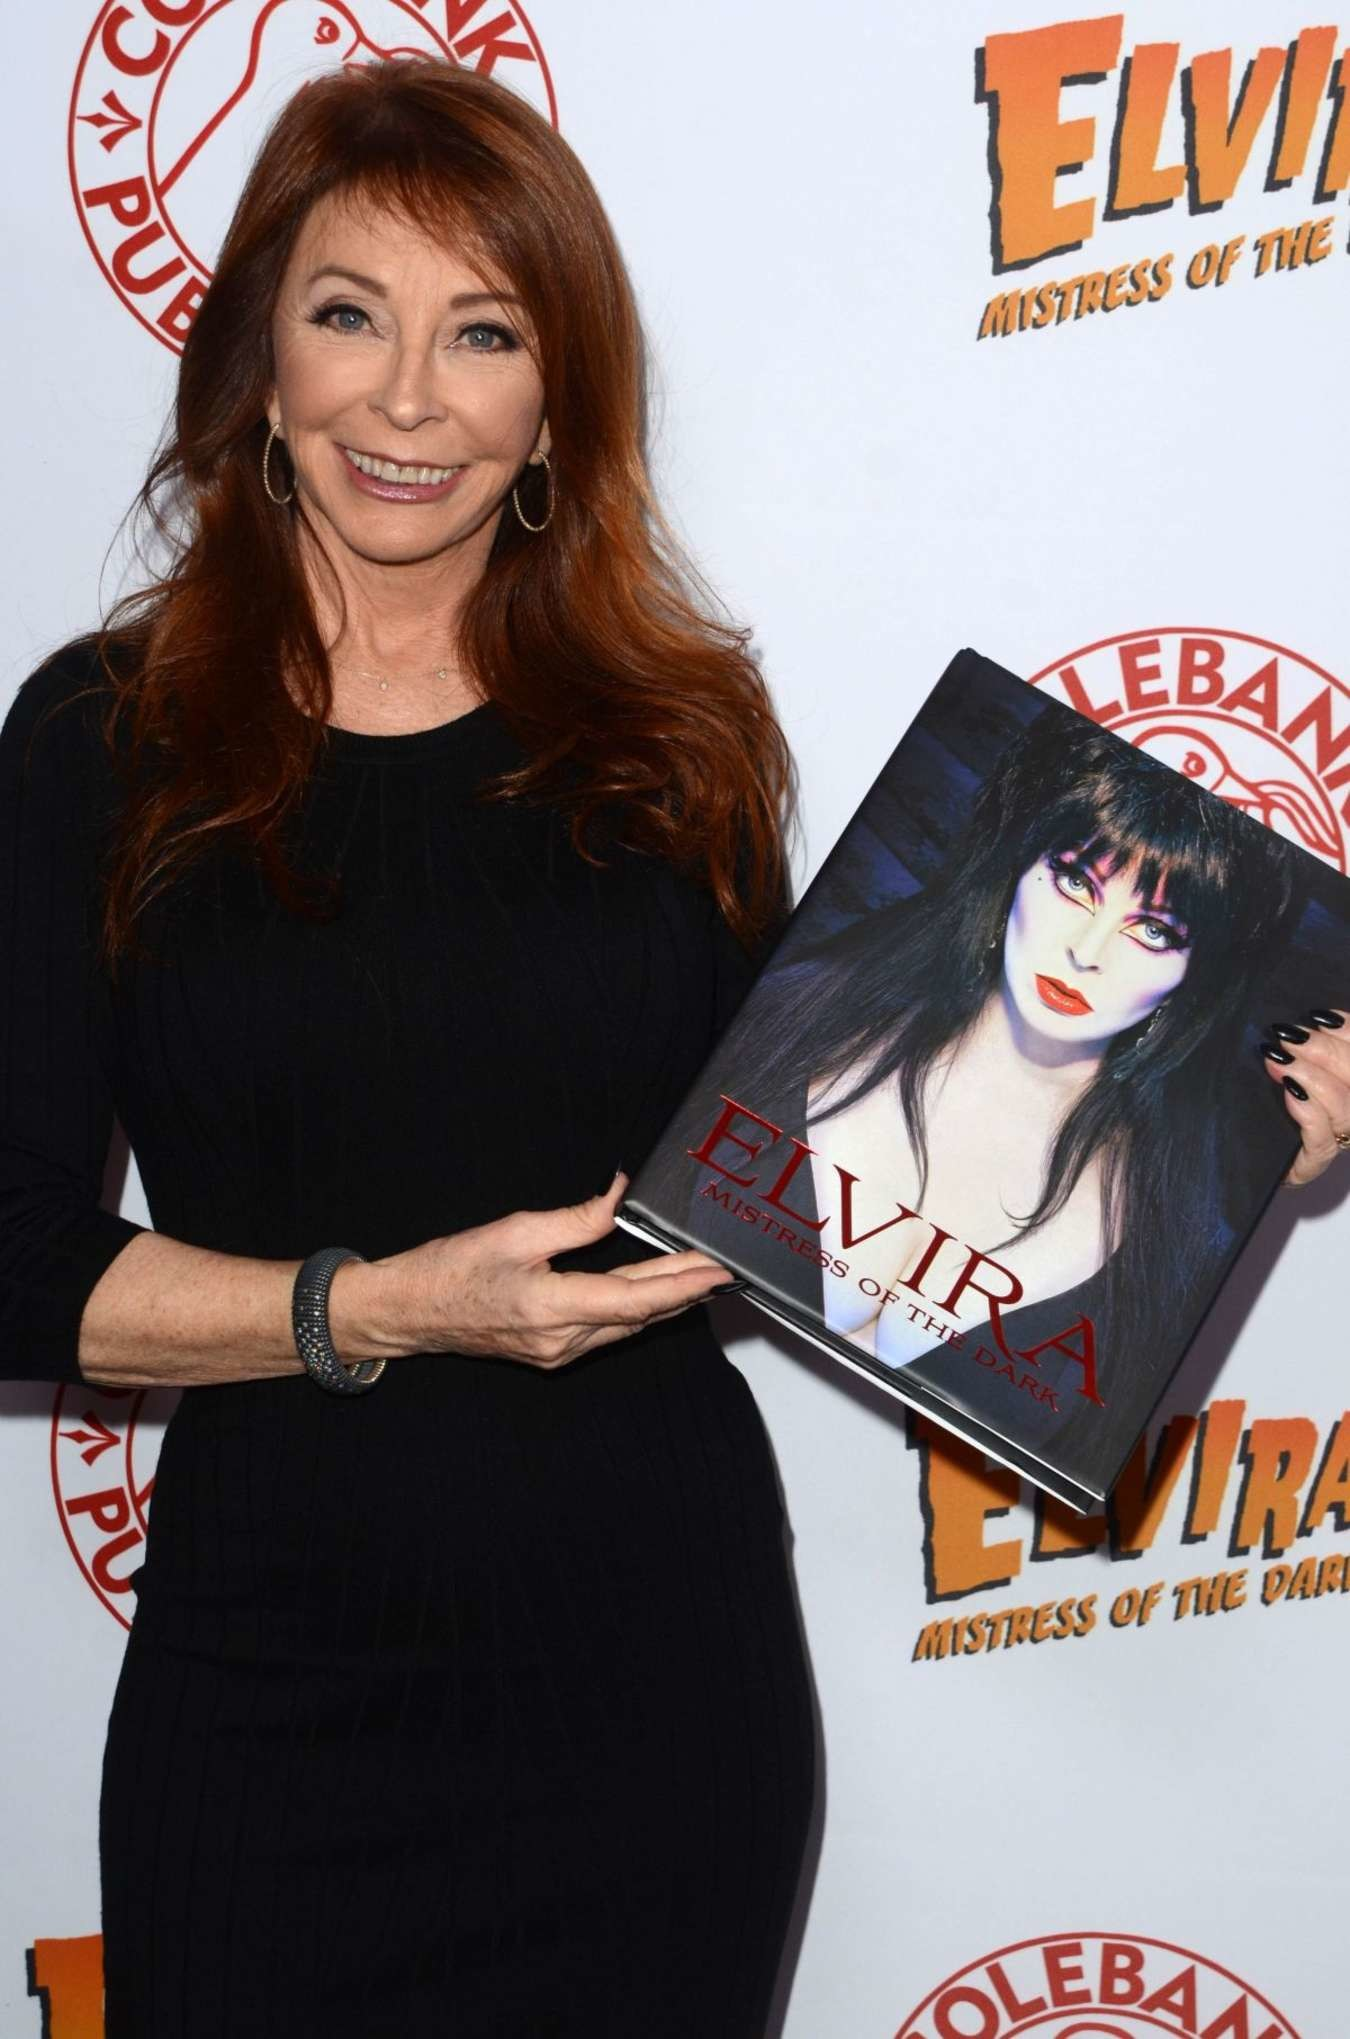 1350x2039 Cassandra Peterson: Elvira Mistress Of The Dark – Book Launch Party In LA